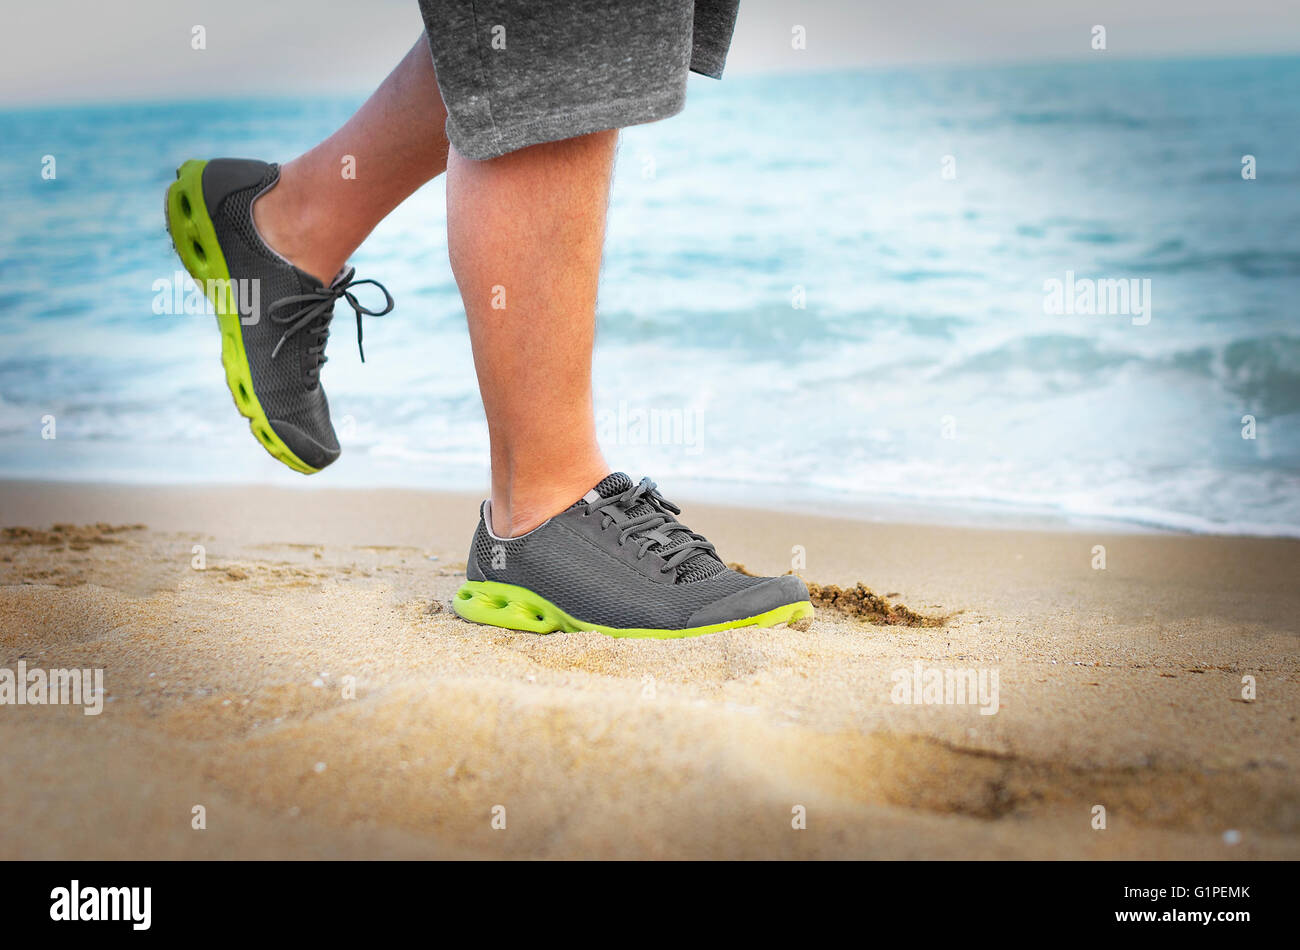 Men's feet in sneakers go on the beach. Close-up. Toned photo. - Stock Image